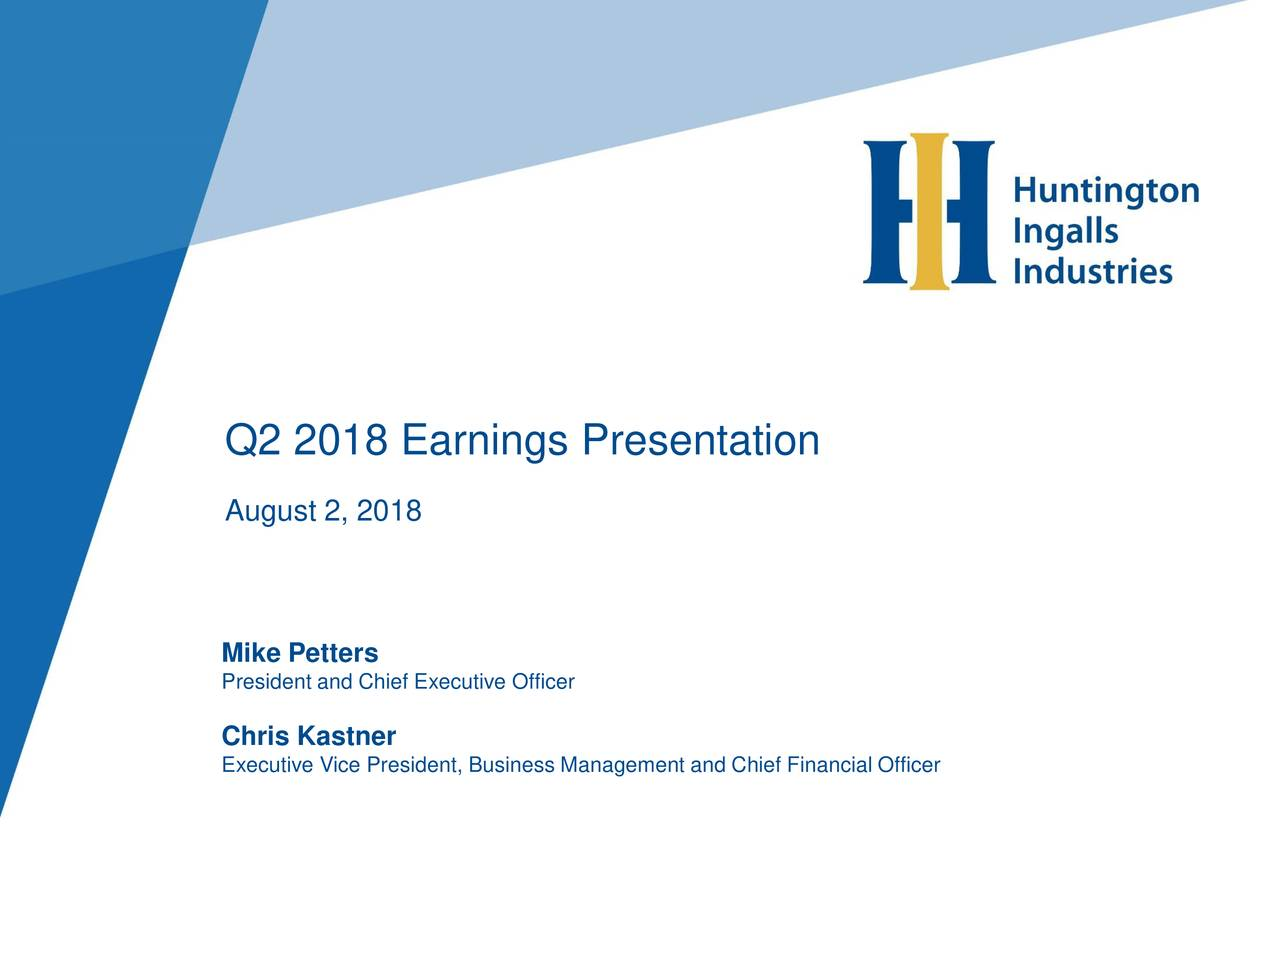 August 2, 2018 Mike Petters President and Chief Executive Officer Chris Kastner Executive Vice President, Business Management and Chief Financial Officer